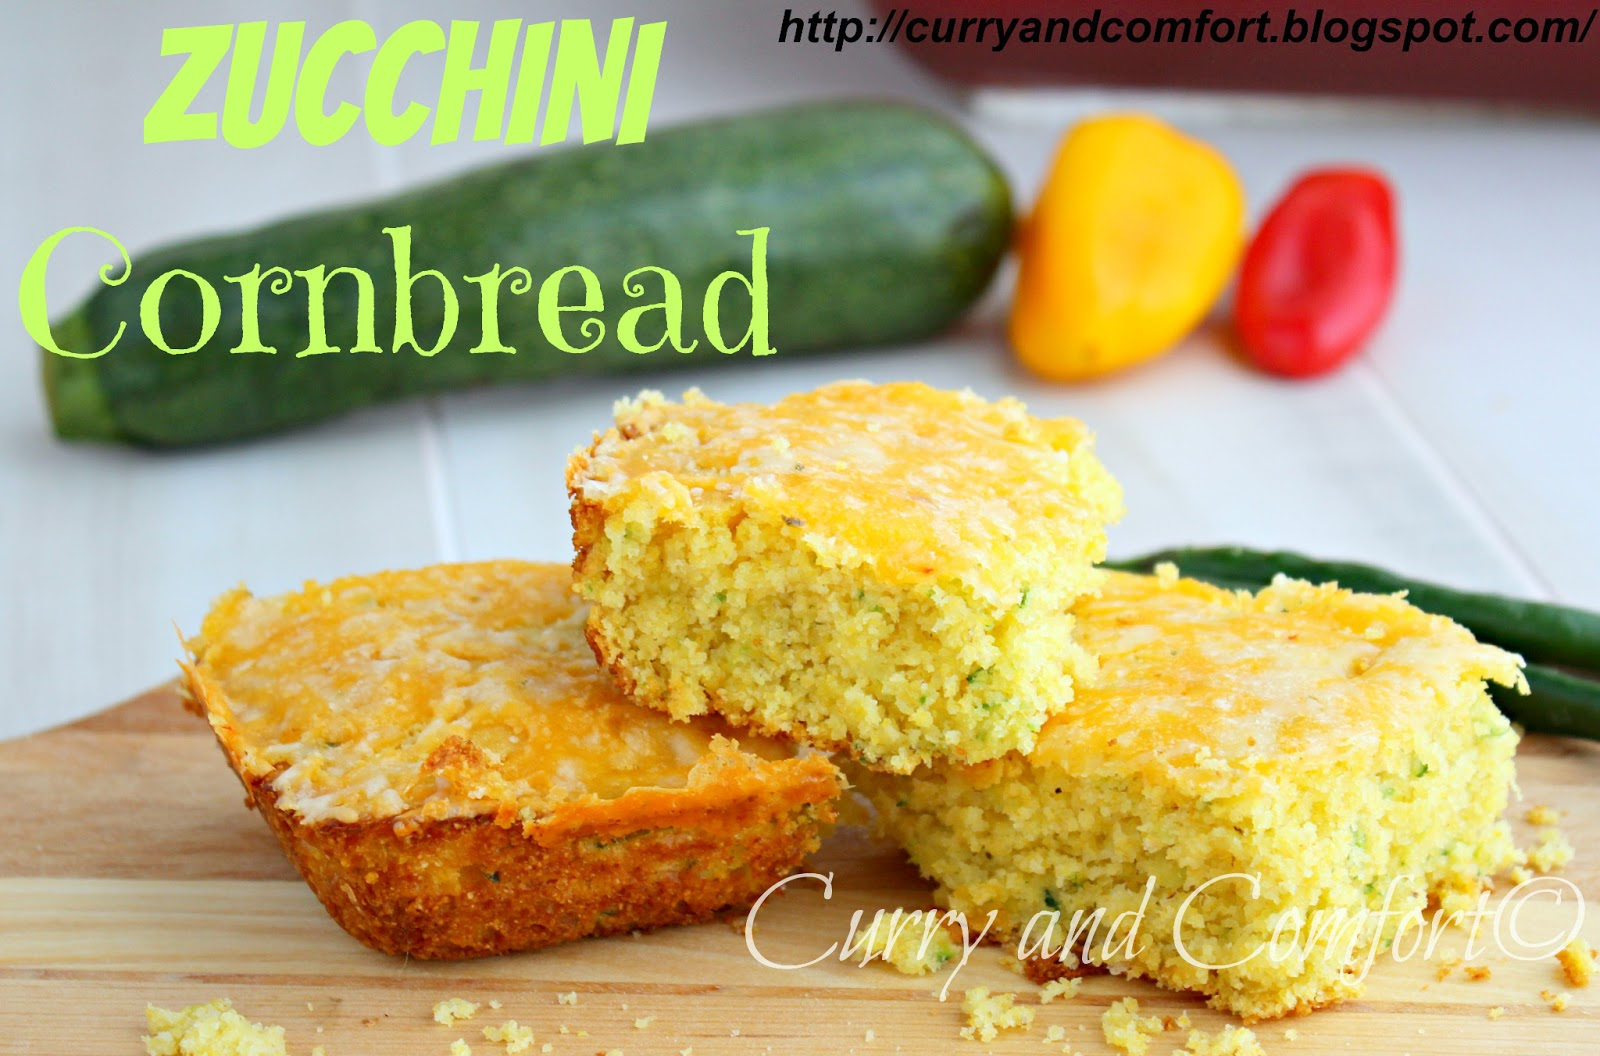 Kitchen Simmer: Zucchini Cornbread (Throwback Thursday)